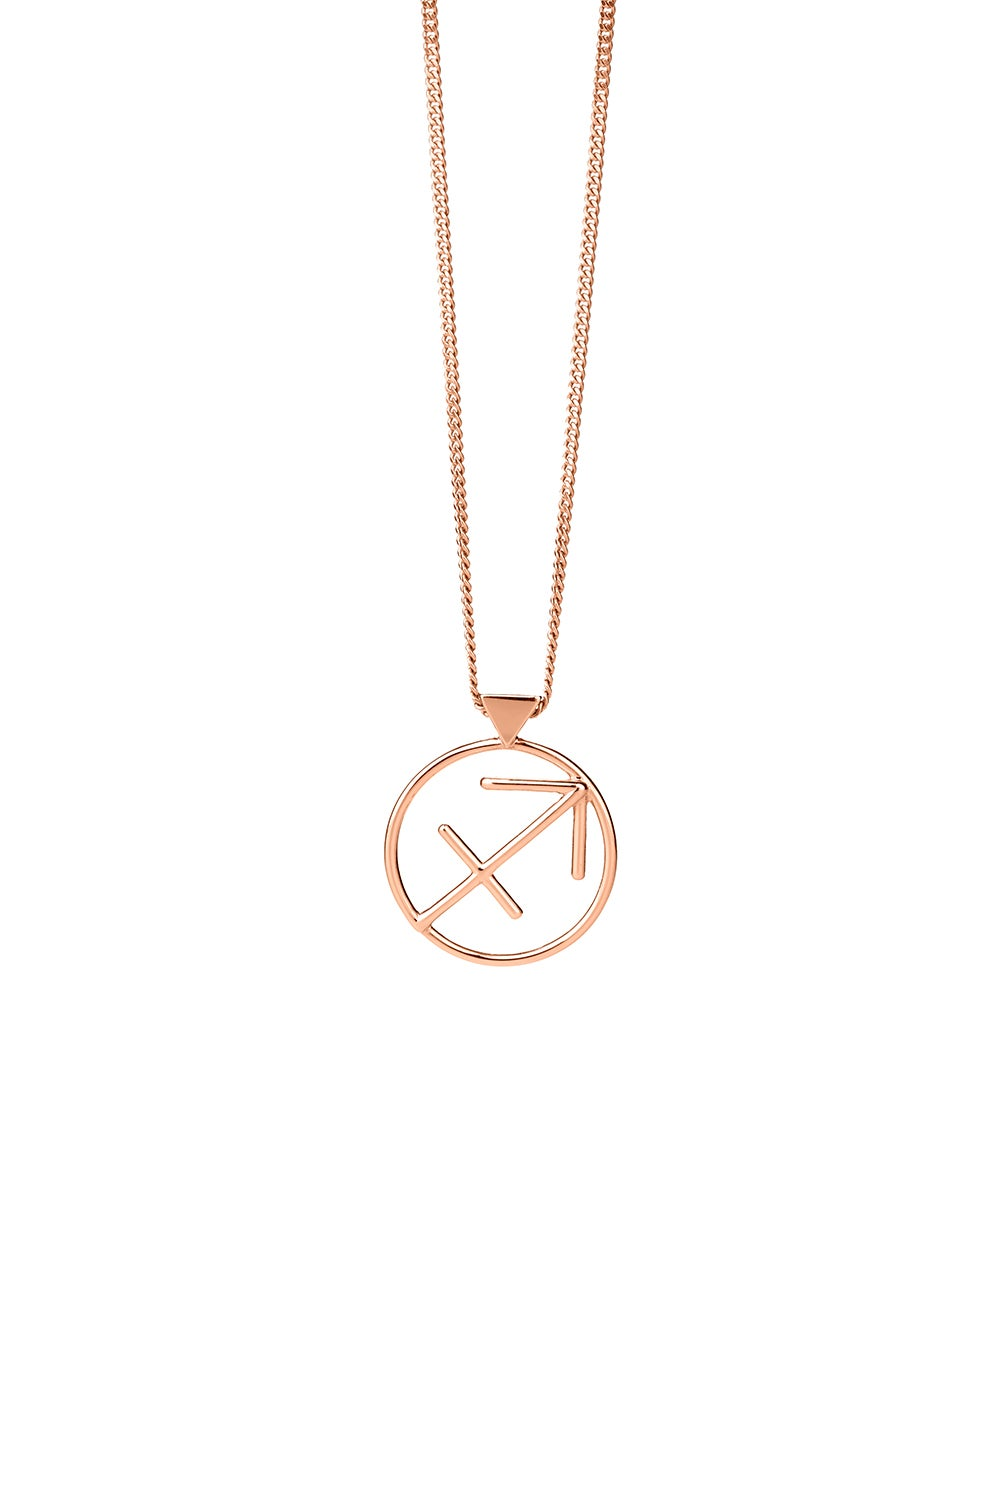 Sagittarius Necklace Rose Gold